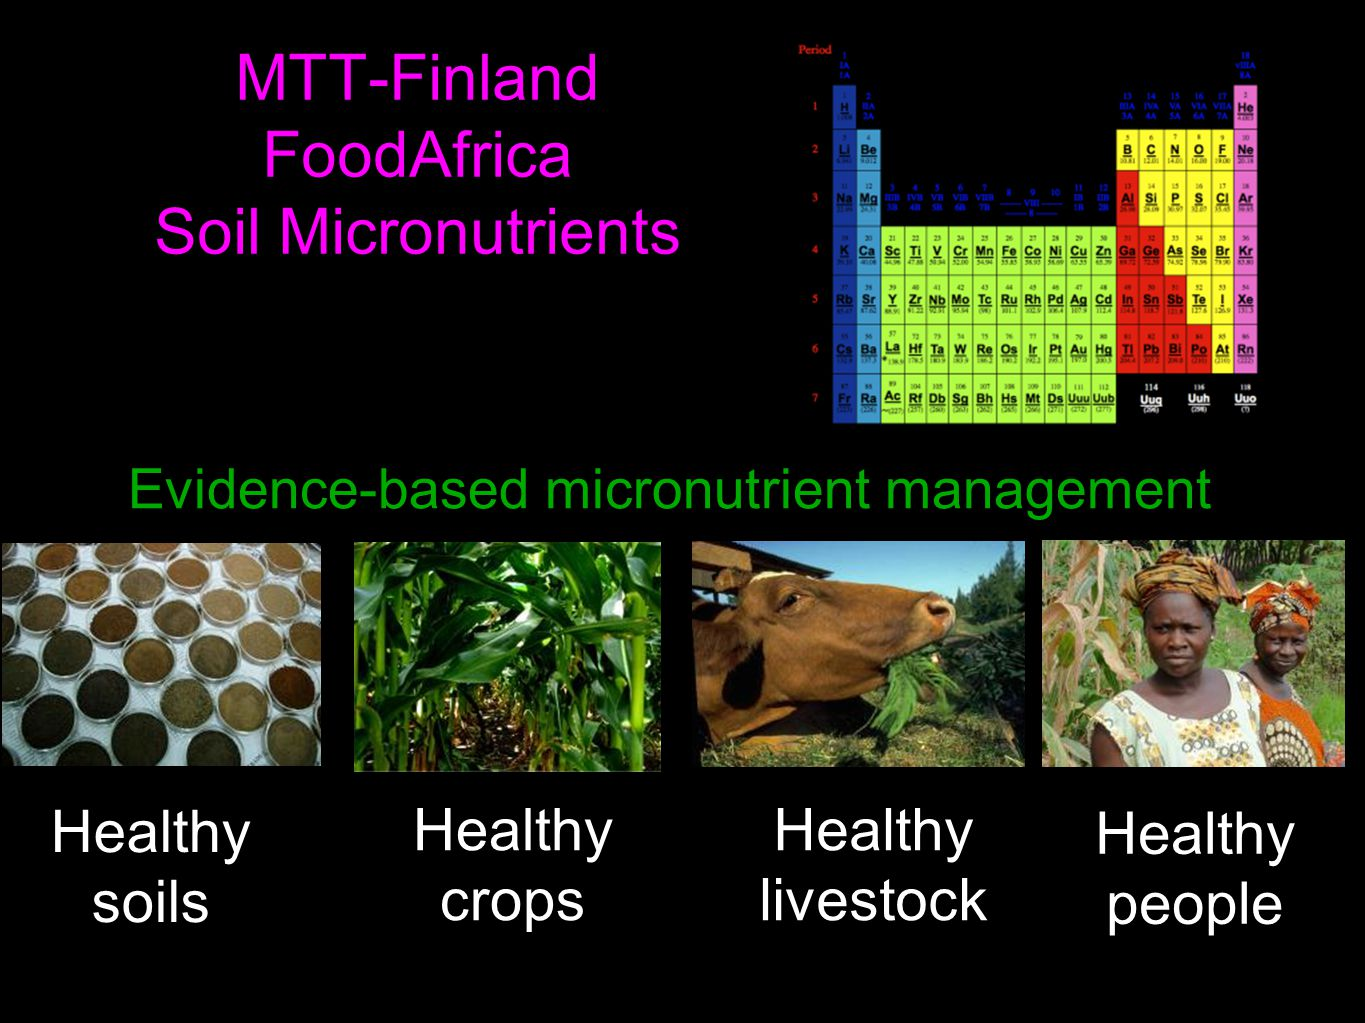 MTT-Finland FoodAfrica Soil Micronutrients Healthy soils Healthy crops Healthy livestock Healthy people Evidence-based micronutrient management